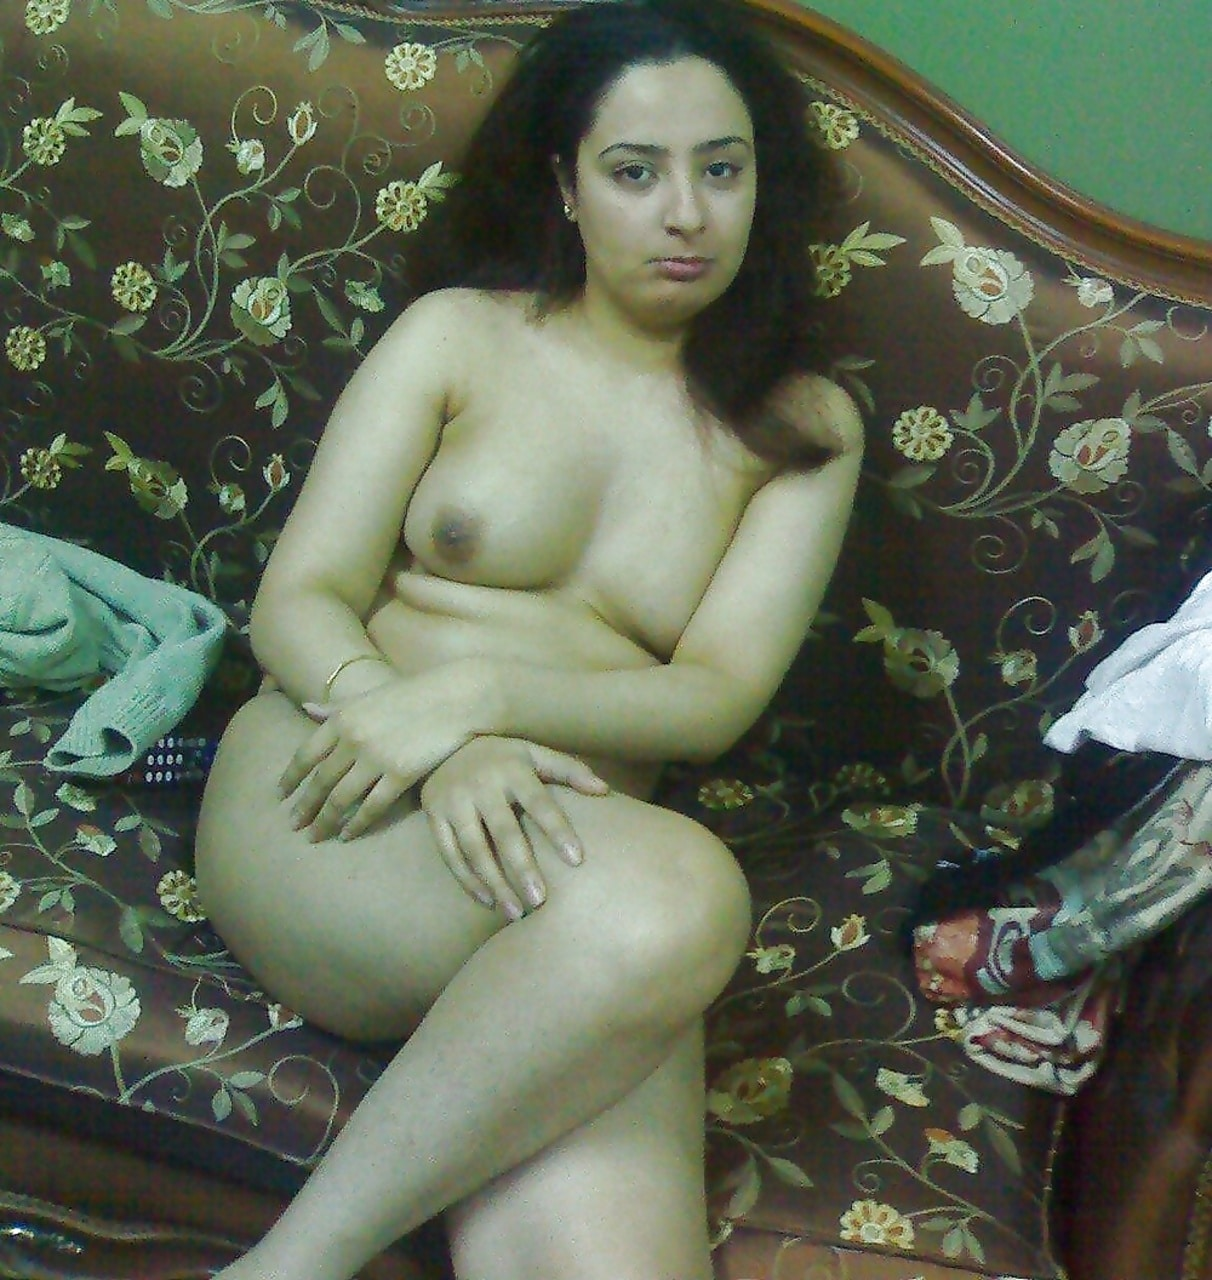 Cute girl sitting naked on the couch